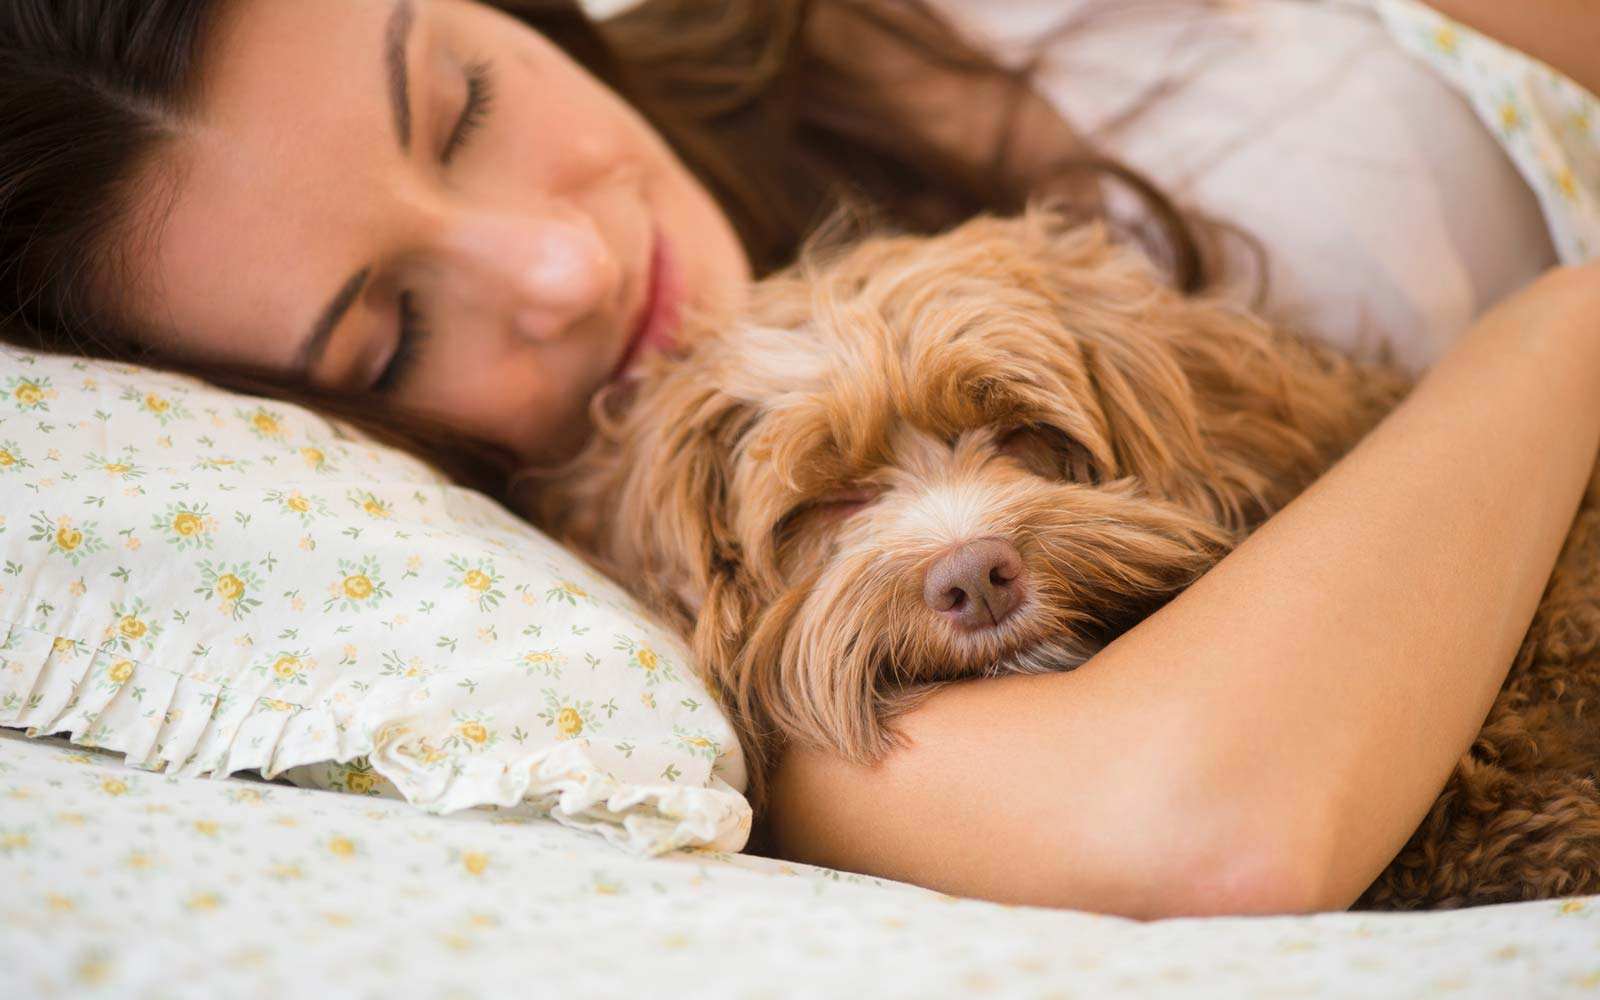 Study Says Women Sleep Better With Their Dogs Than With Their Partners